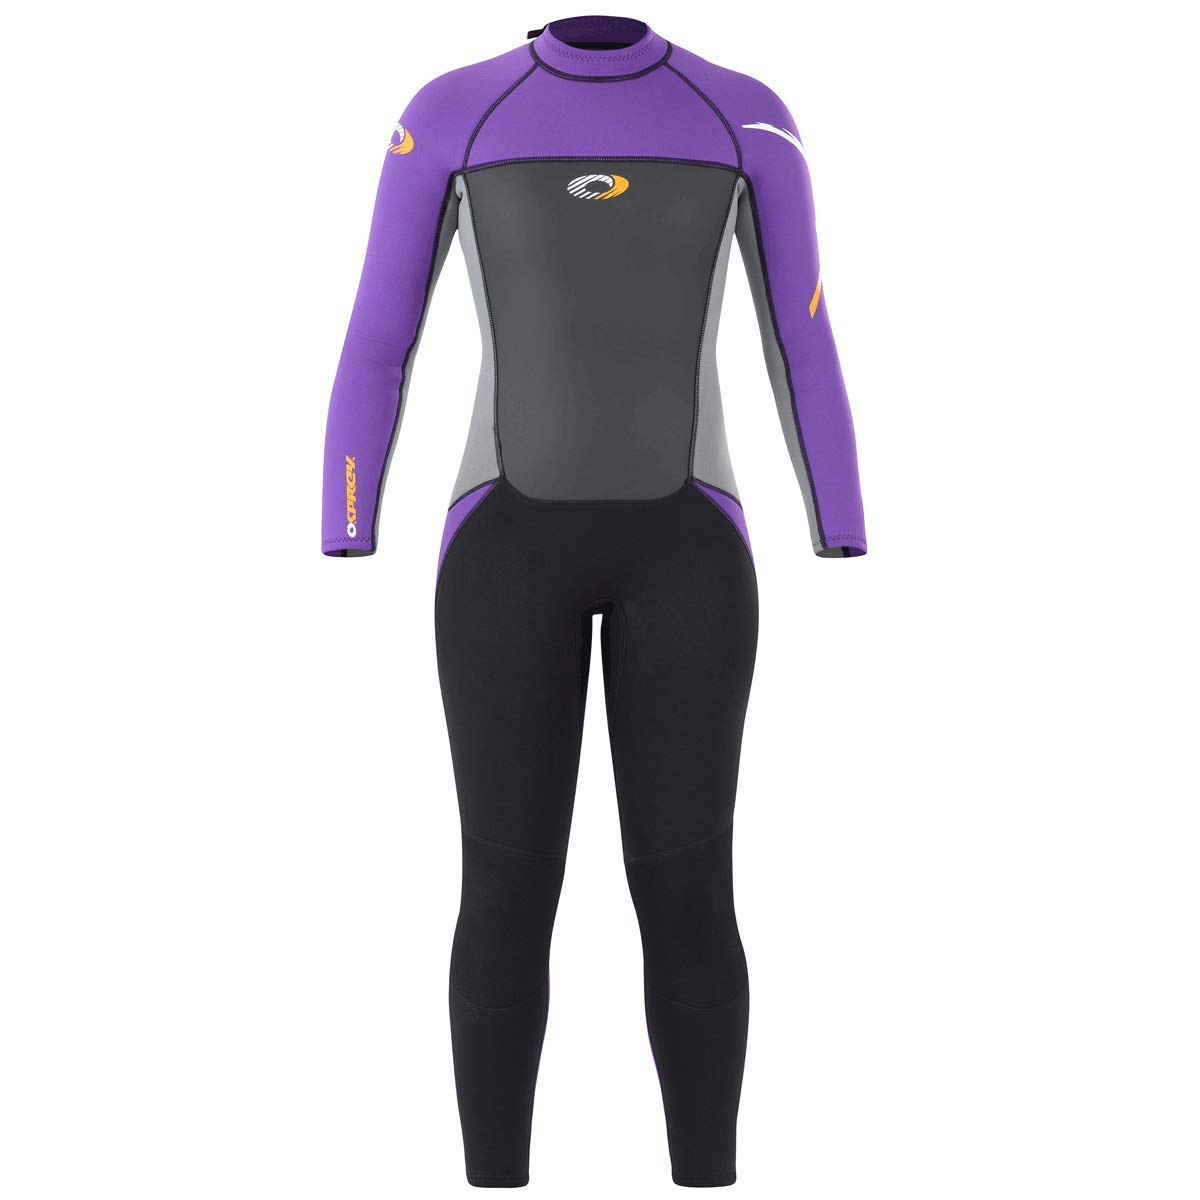 Osprey Origin Womens 3 2mm Full Length Summer Wetsuit - Surf 03004b7c0